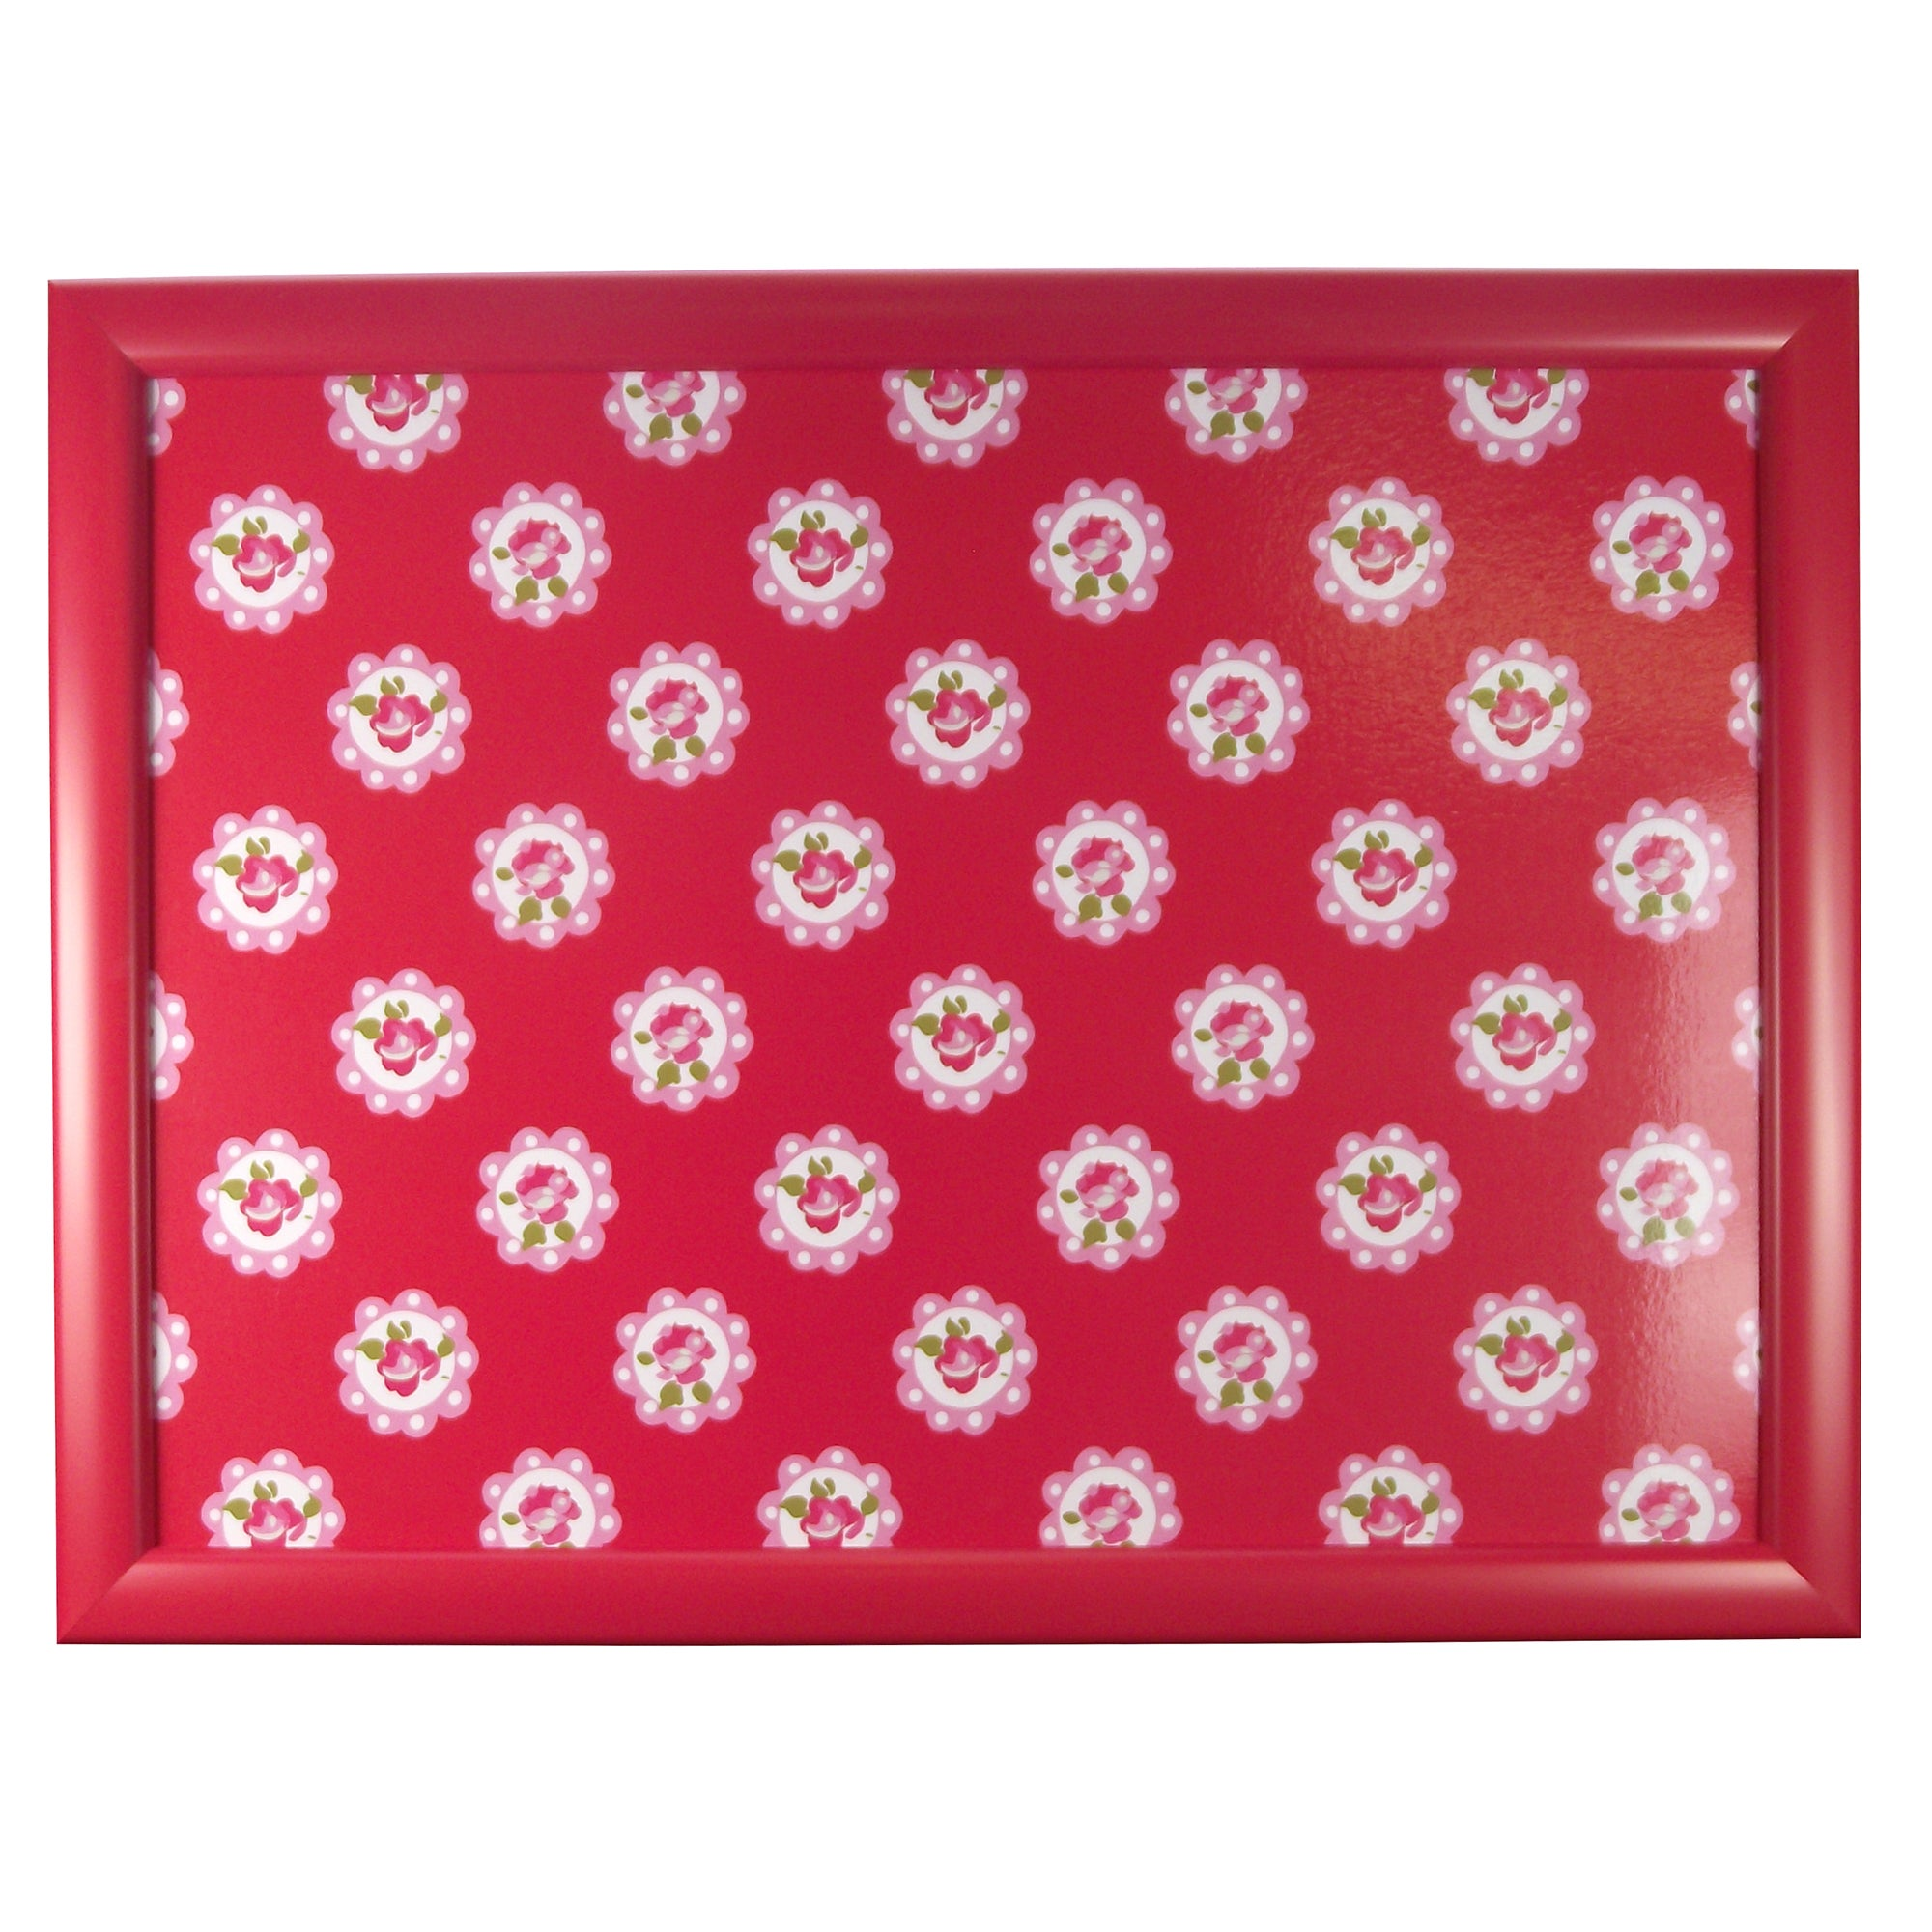 Rose and Ellis Allexton Collection Lap Tray